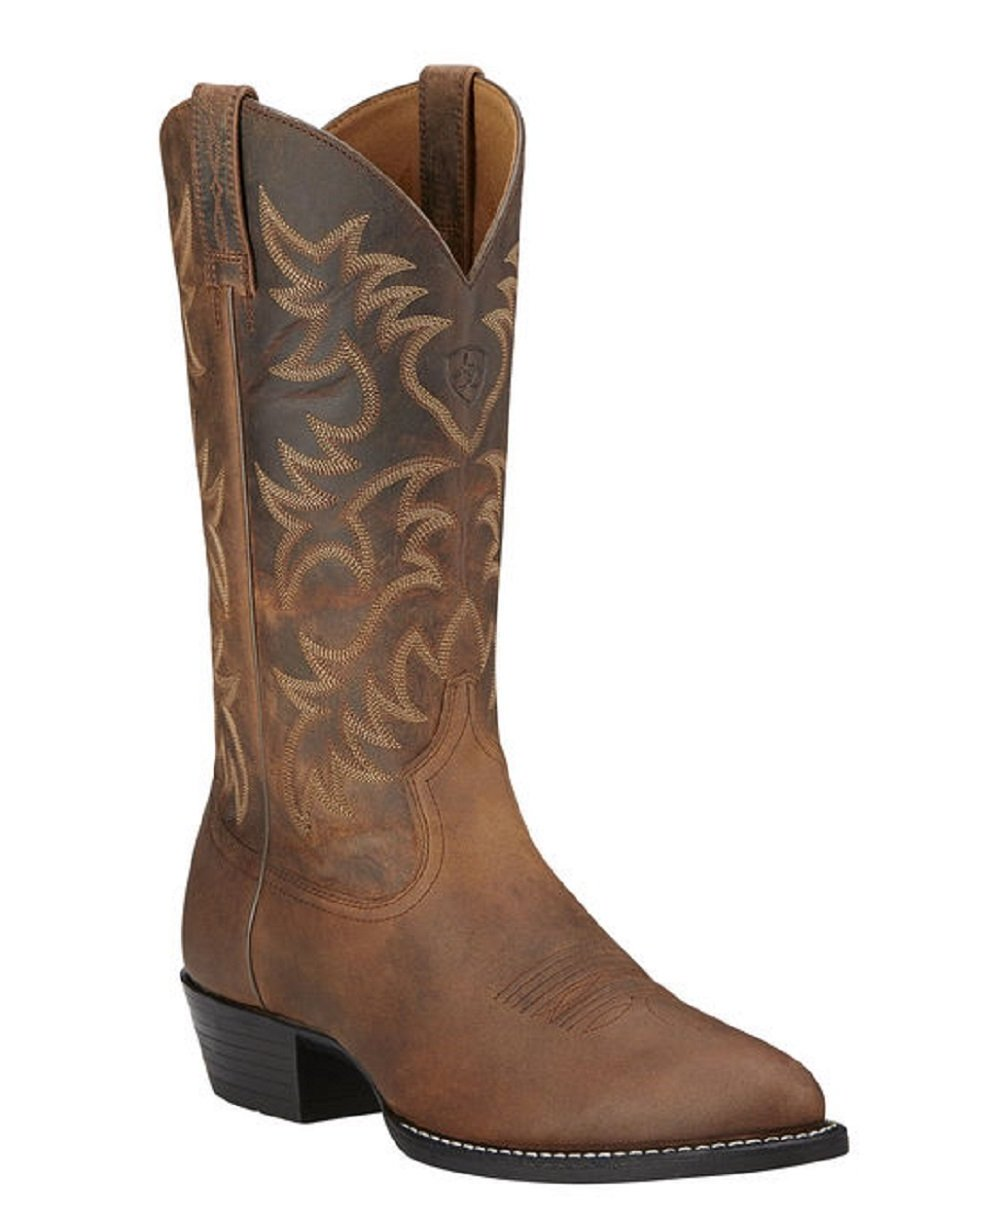 ARIAT MEN'S R TOE HERITAGE WESTERN BOOTS - STYLE #10002204